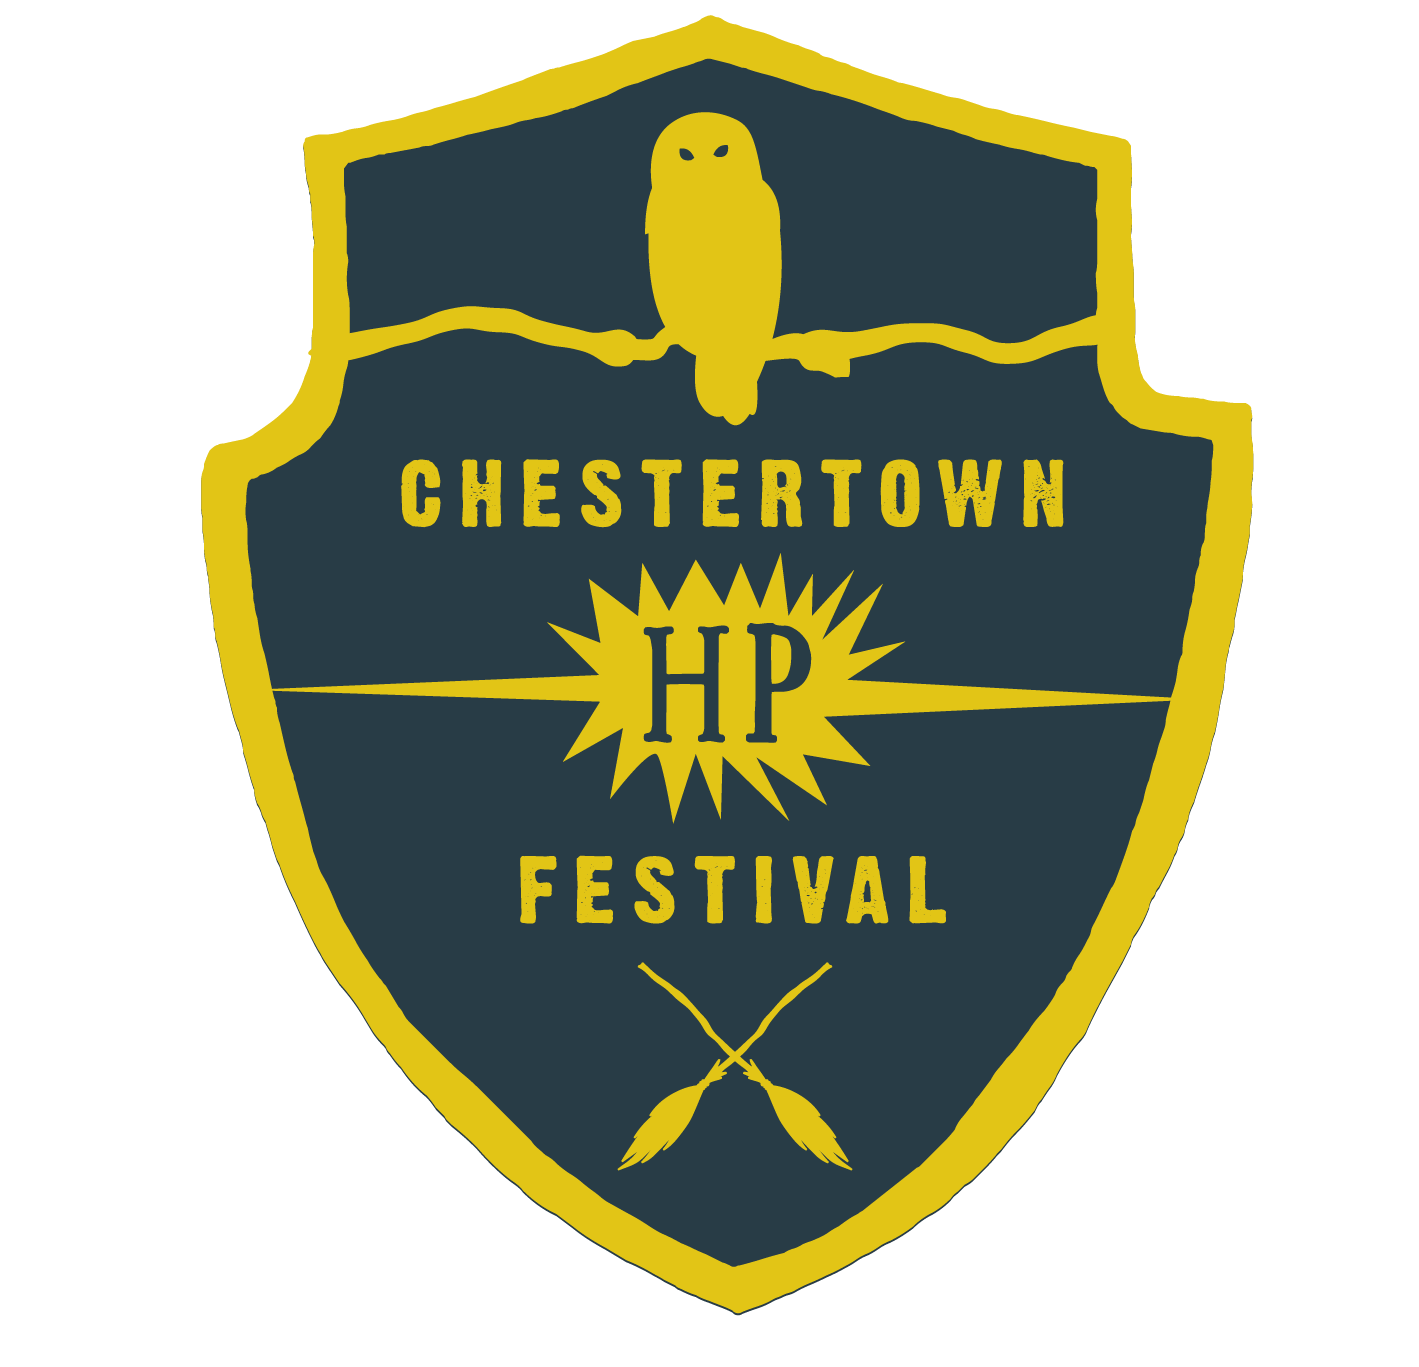 Chestertown Harry Potter Festival